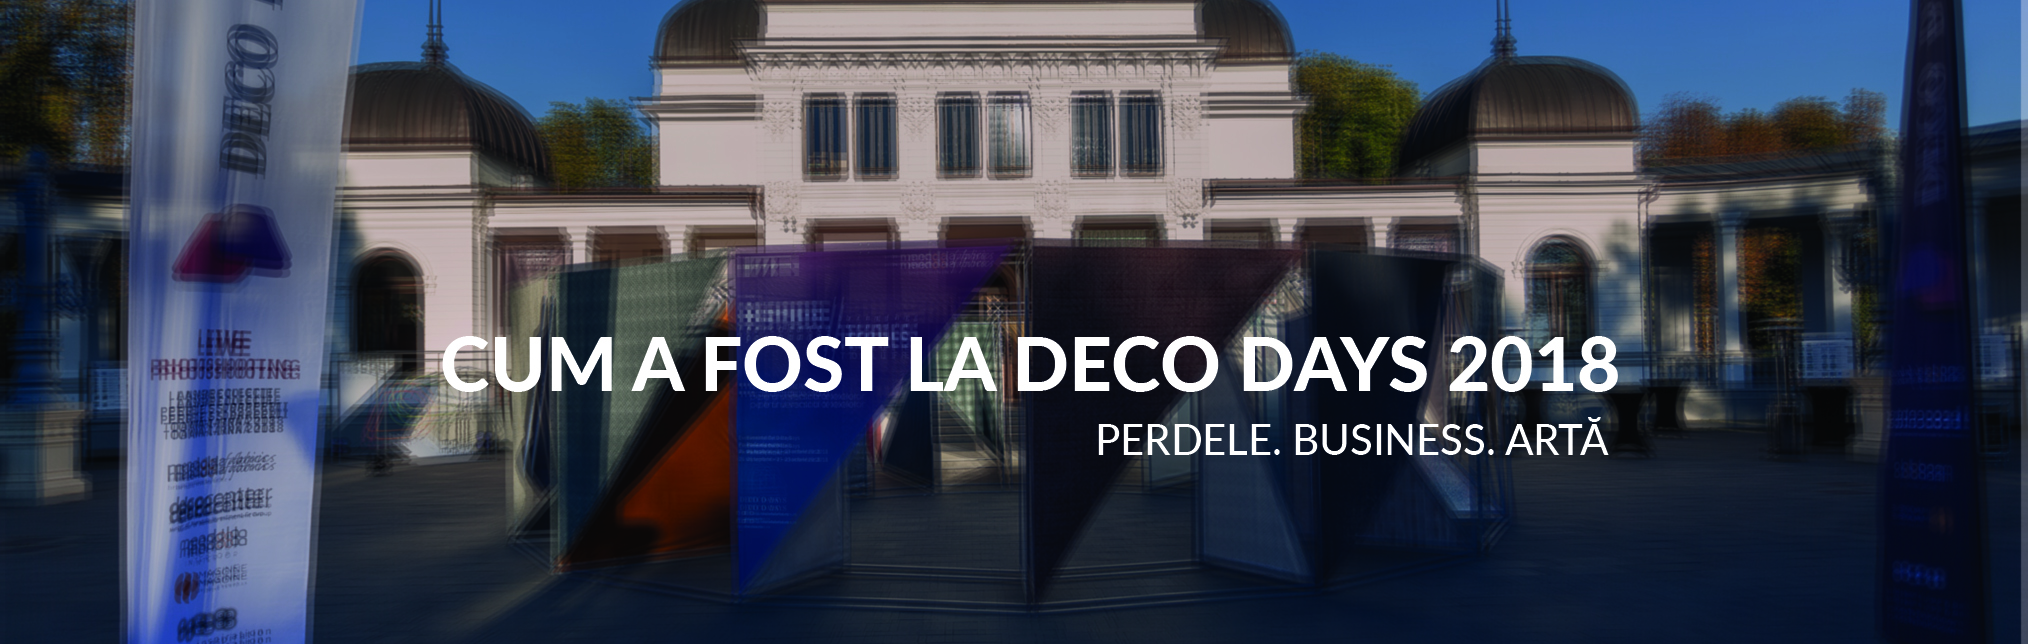 Deco Days 2018: Perdele. Business. Arta